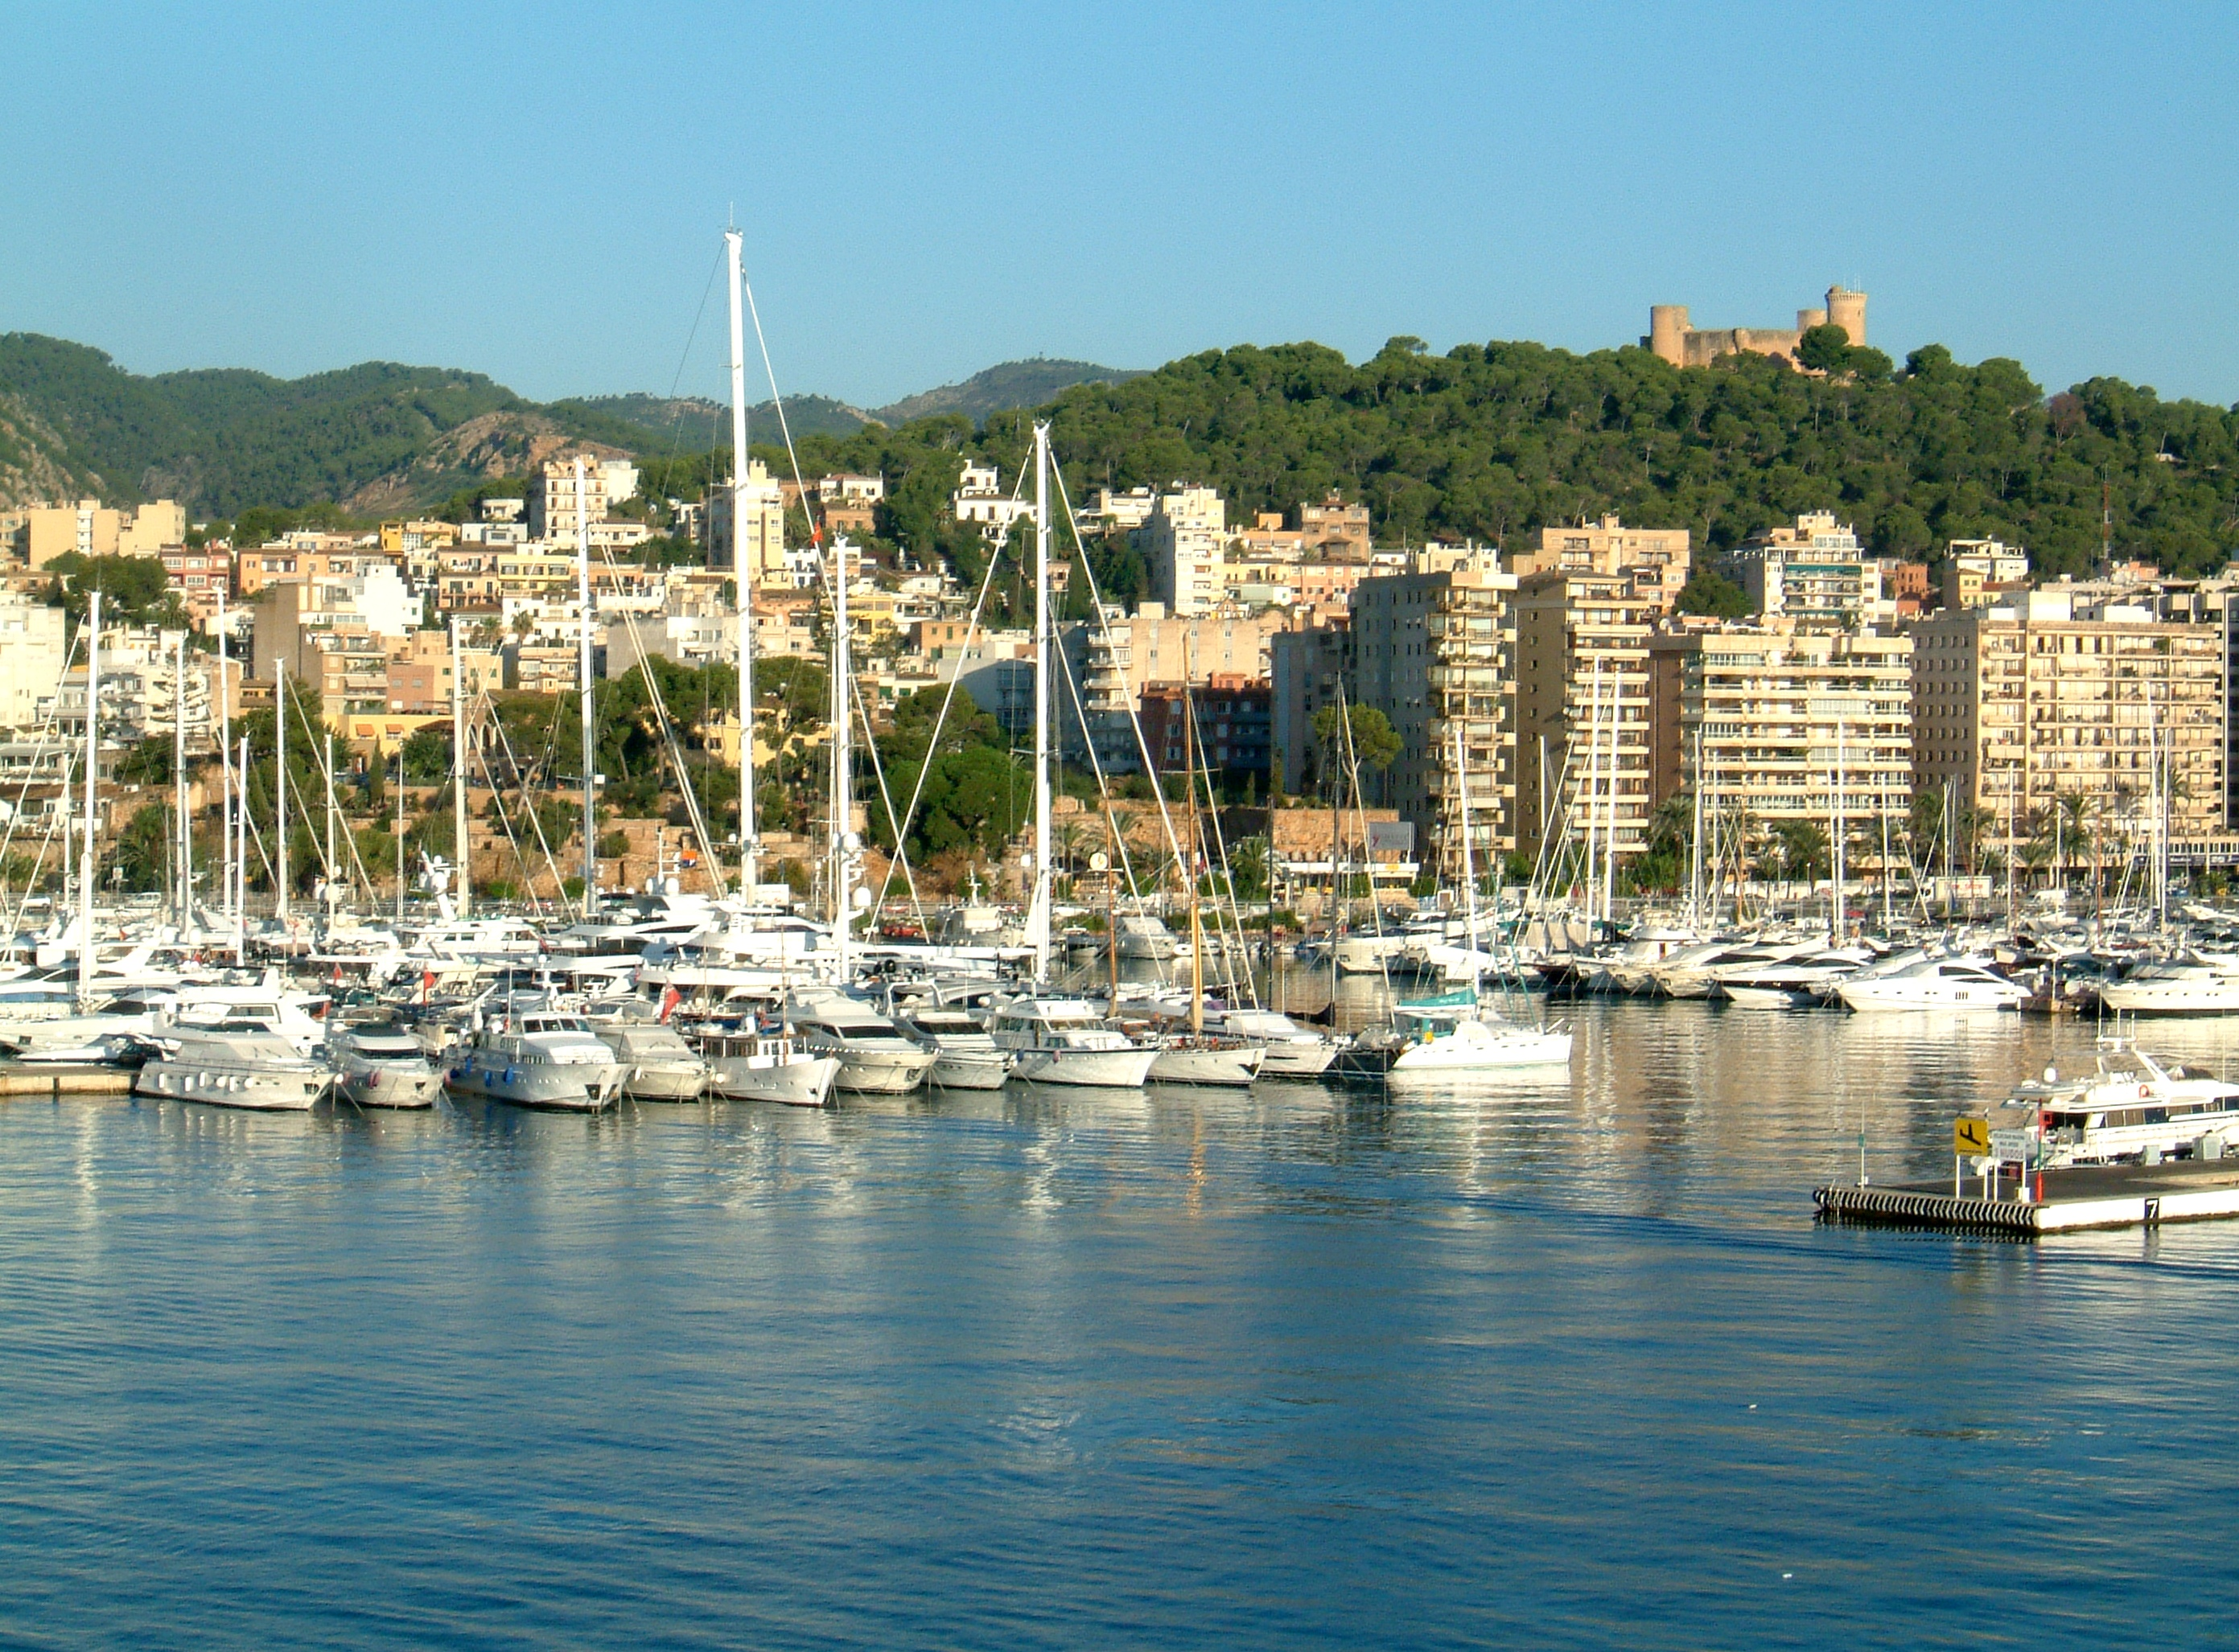 Harbour of Palma, located within the bay.